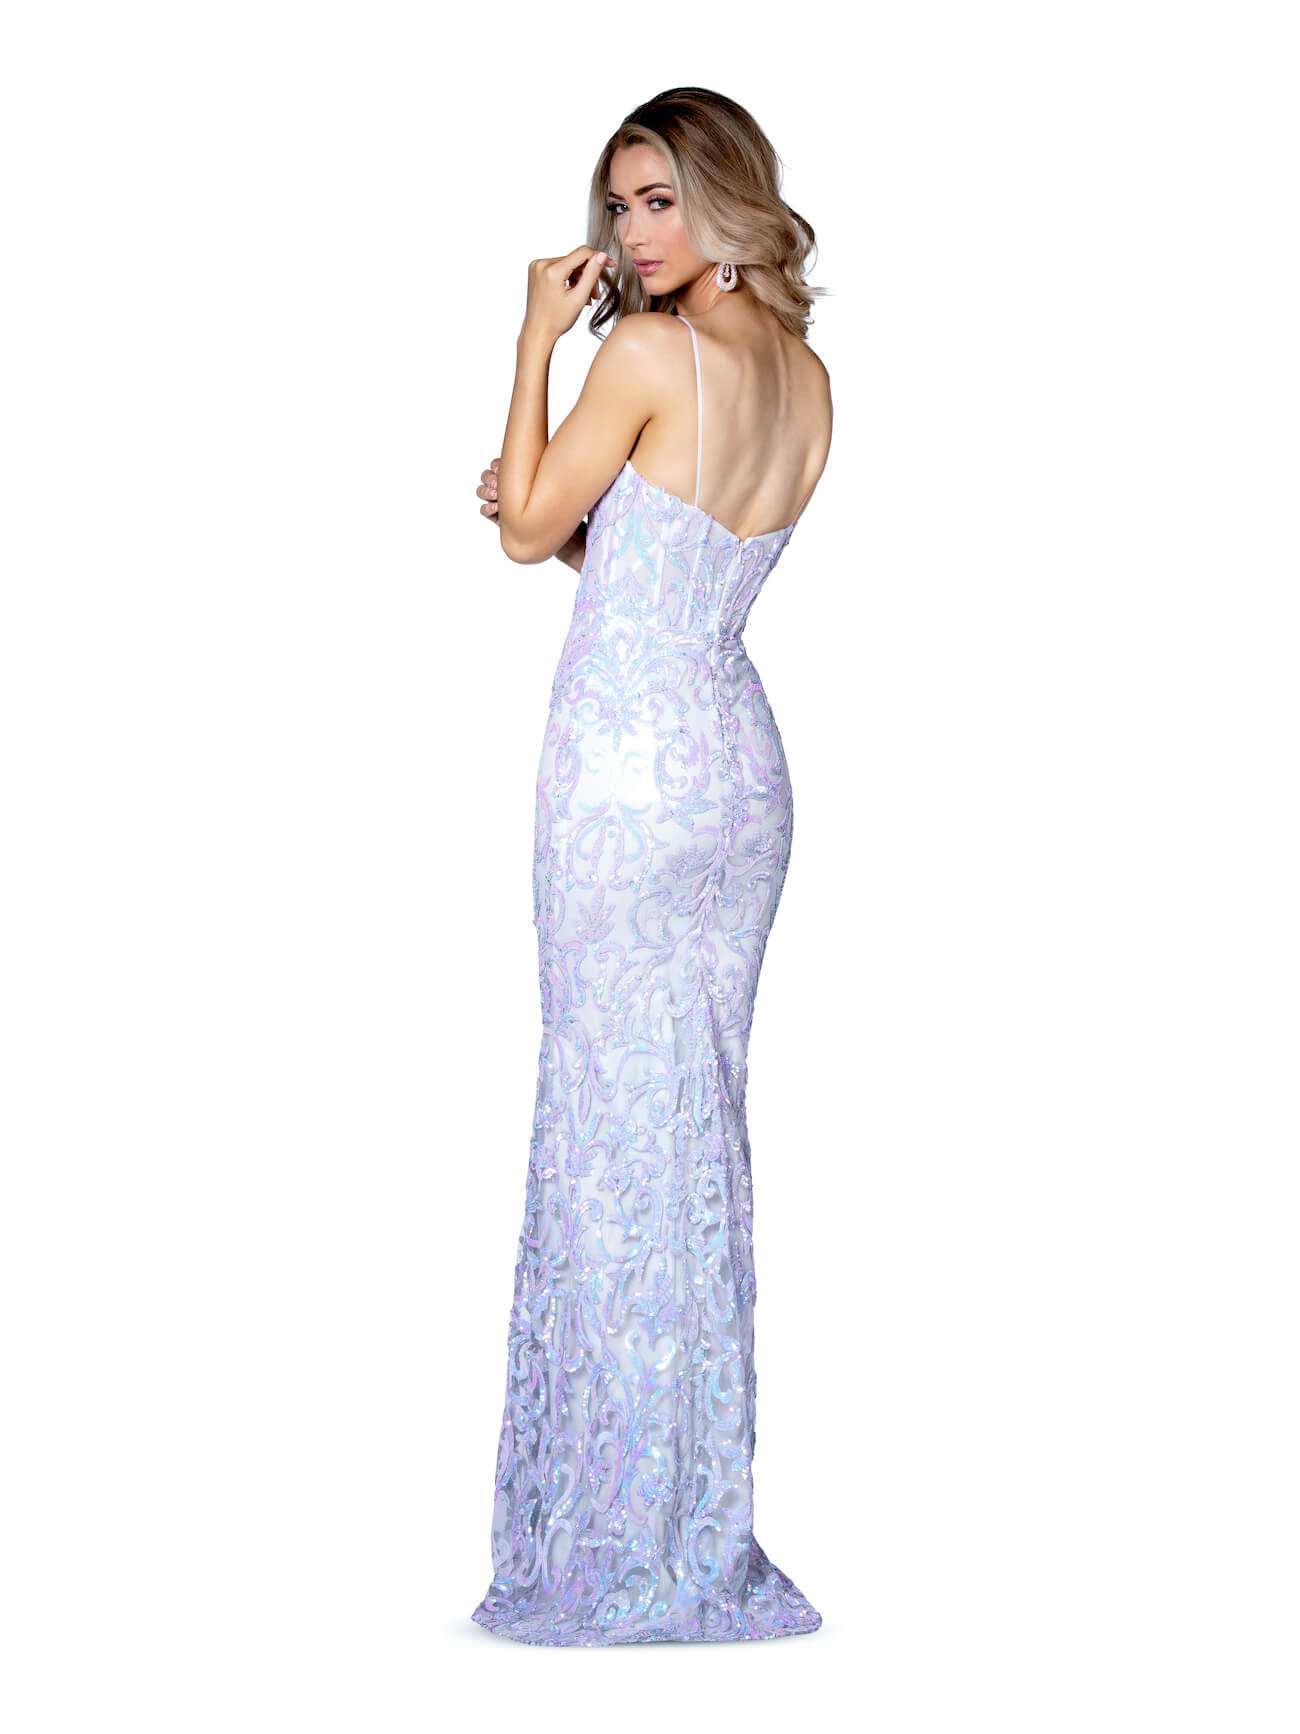 Vienna Blue Size 10 Sweetheart Train Shiny Straight Dress on Queenly